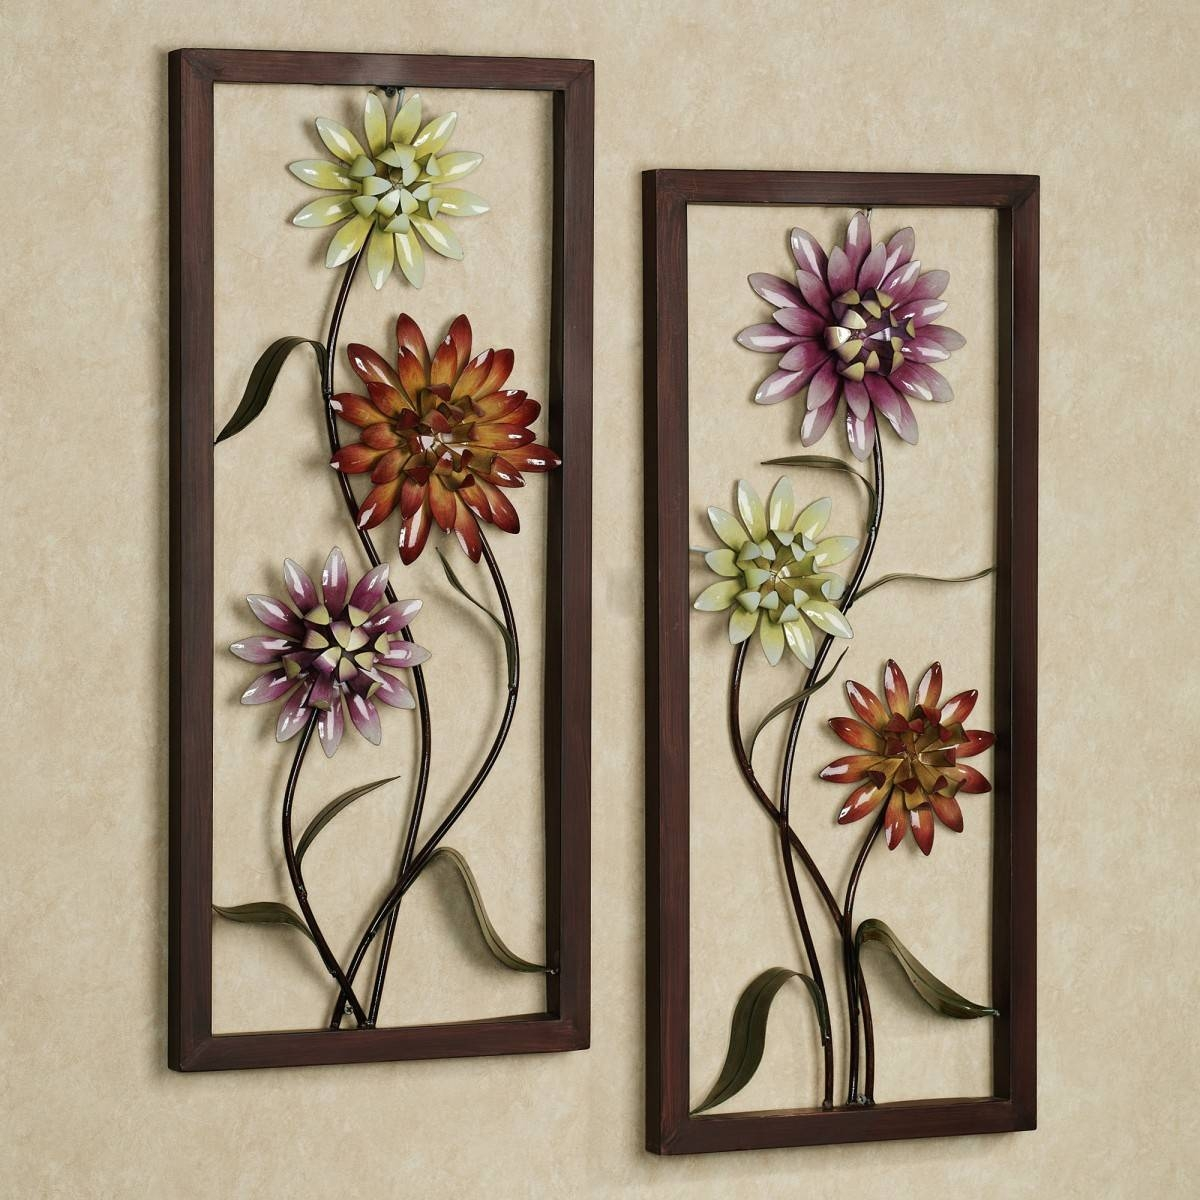 Impressive Ceramic Flower Wall Decor For Sale Ceramic Magnolia Inside Most Recently Released Ceramic Flower Wall Art (View 13 of 30)